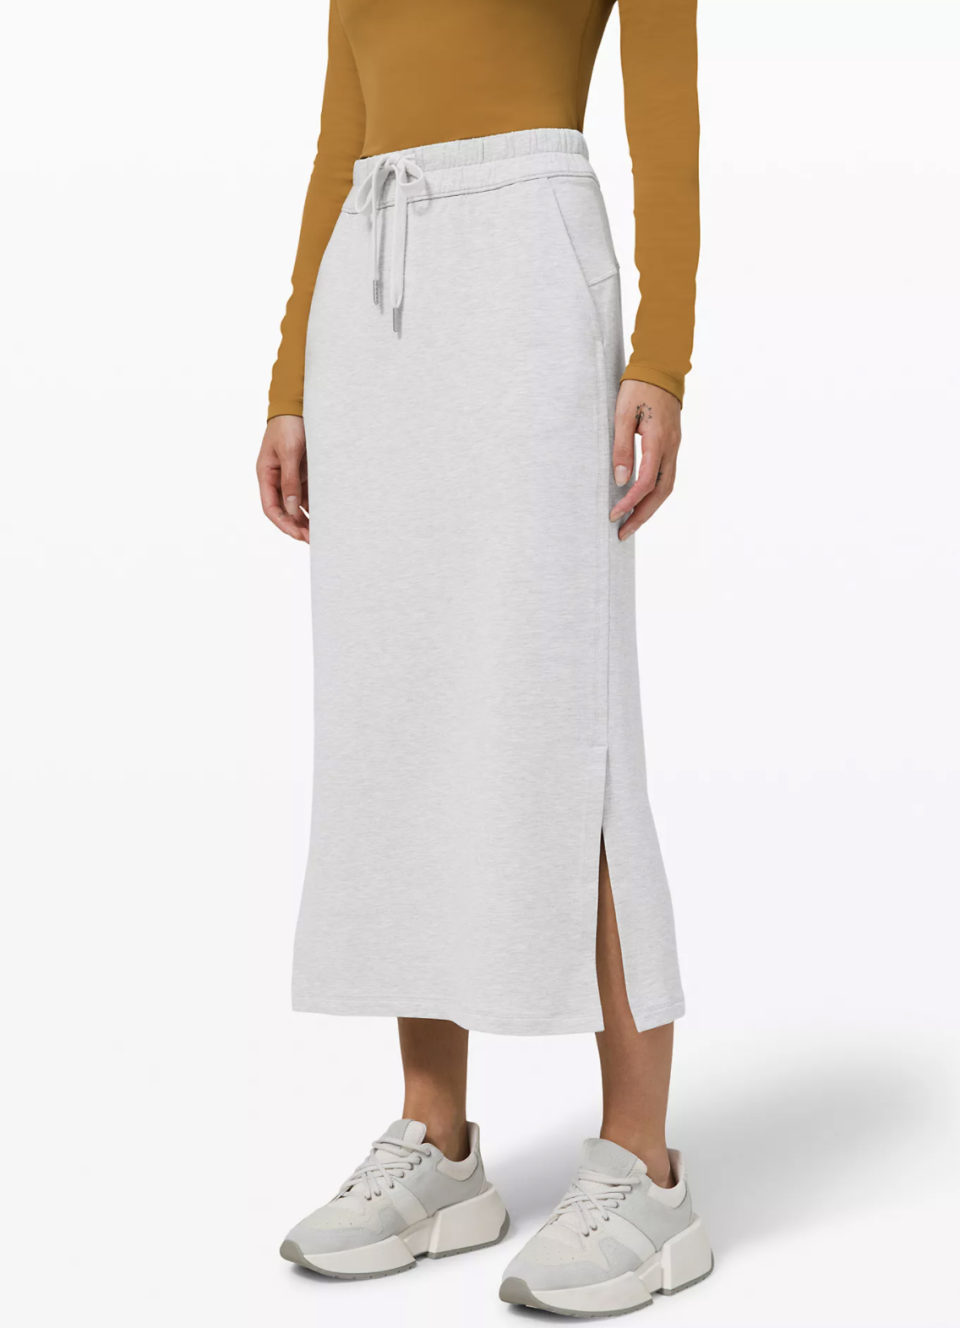 Bound to Bliss Skirt - Lululemon, $64 (originally $88)